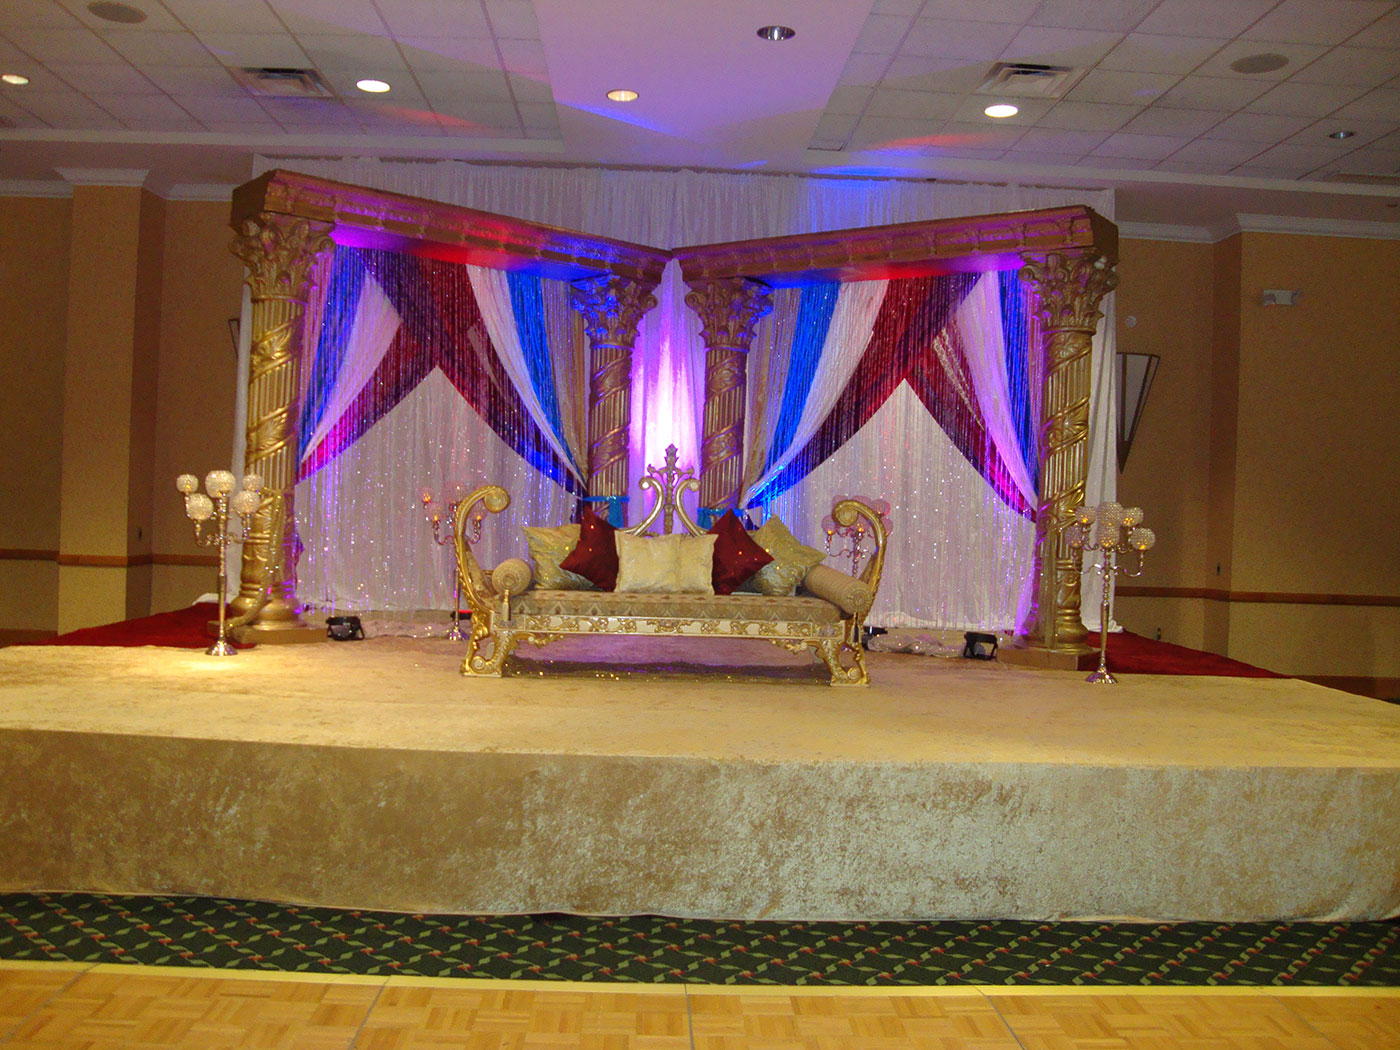 ethnic wedding setup with colorful curtains and a loveseat